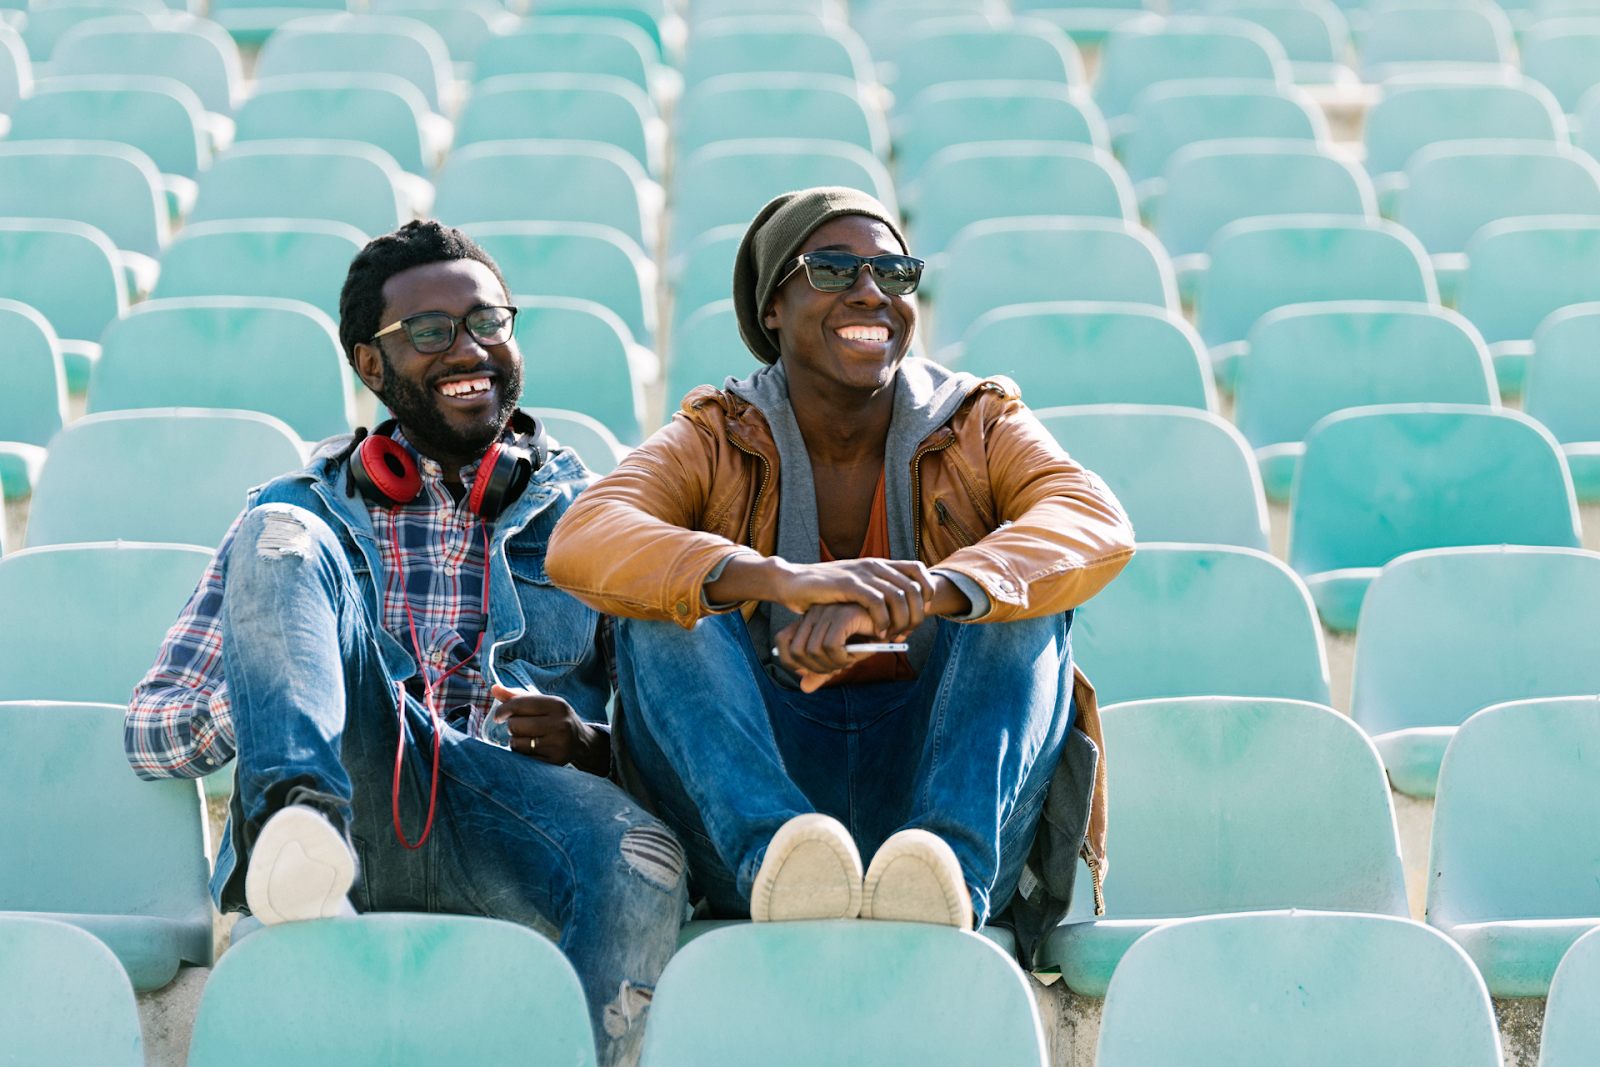 two black friends sitting next to each other in bleachers